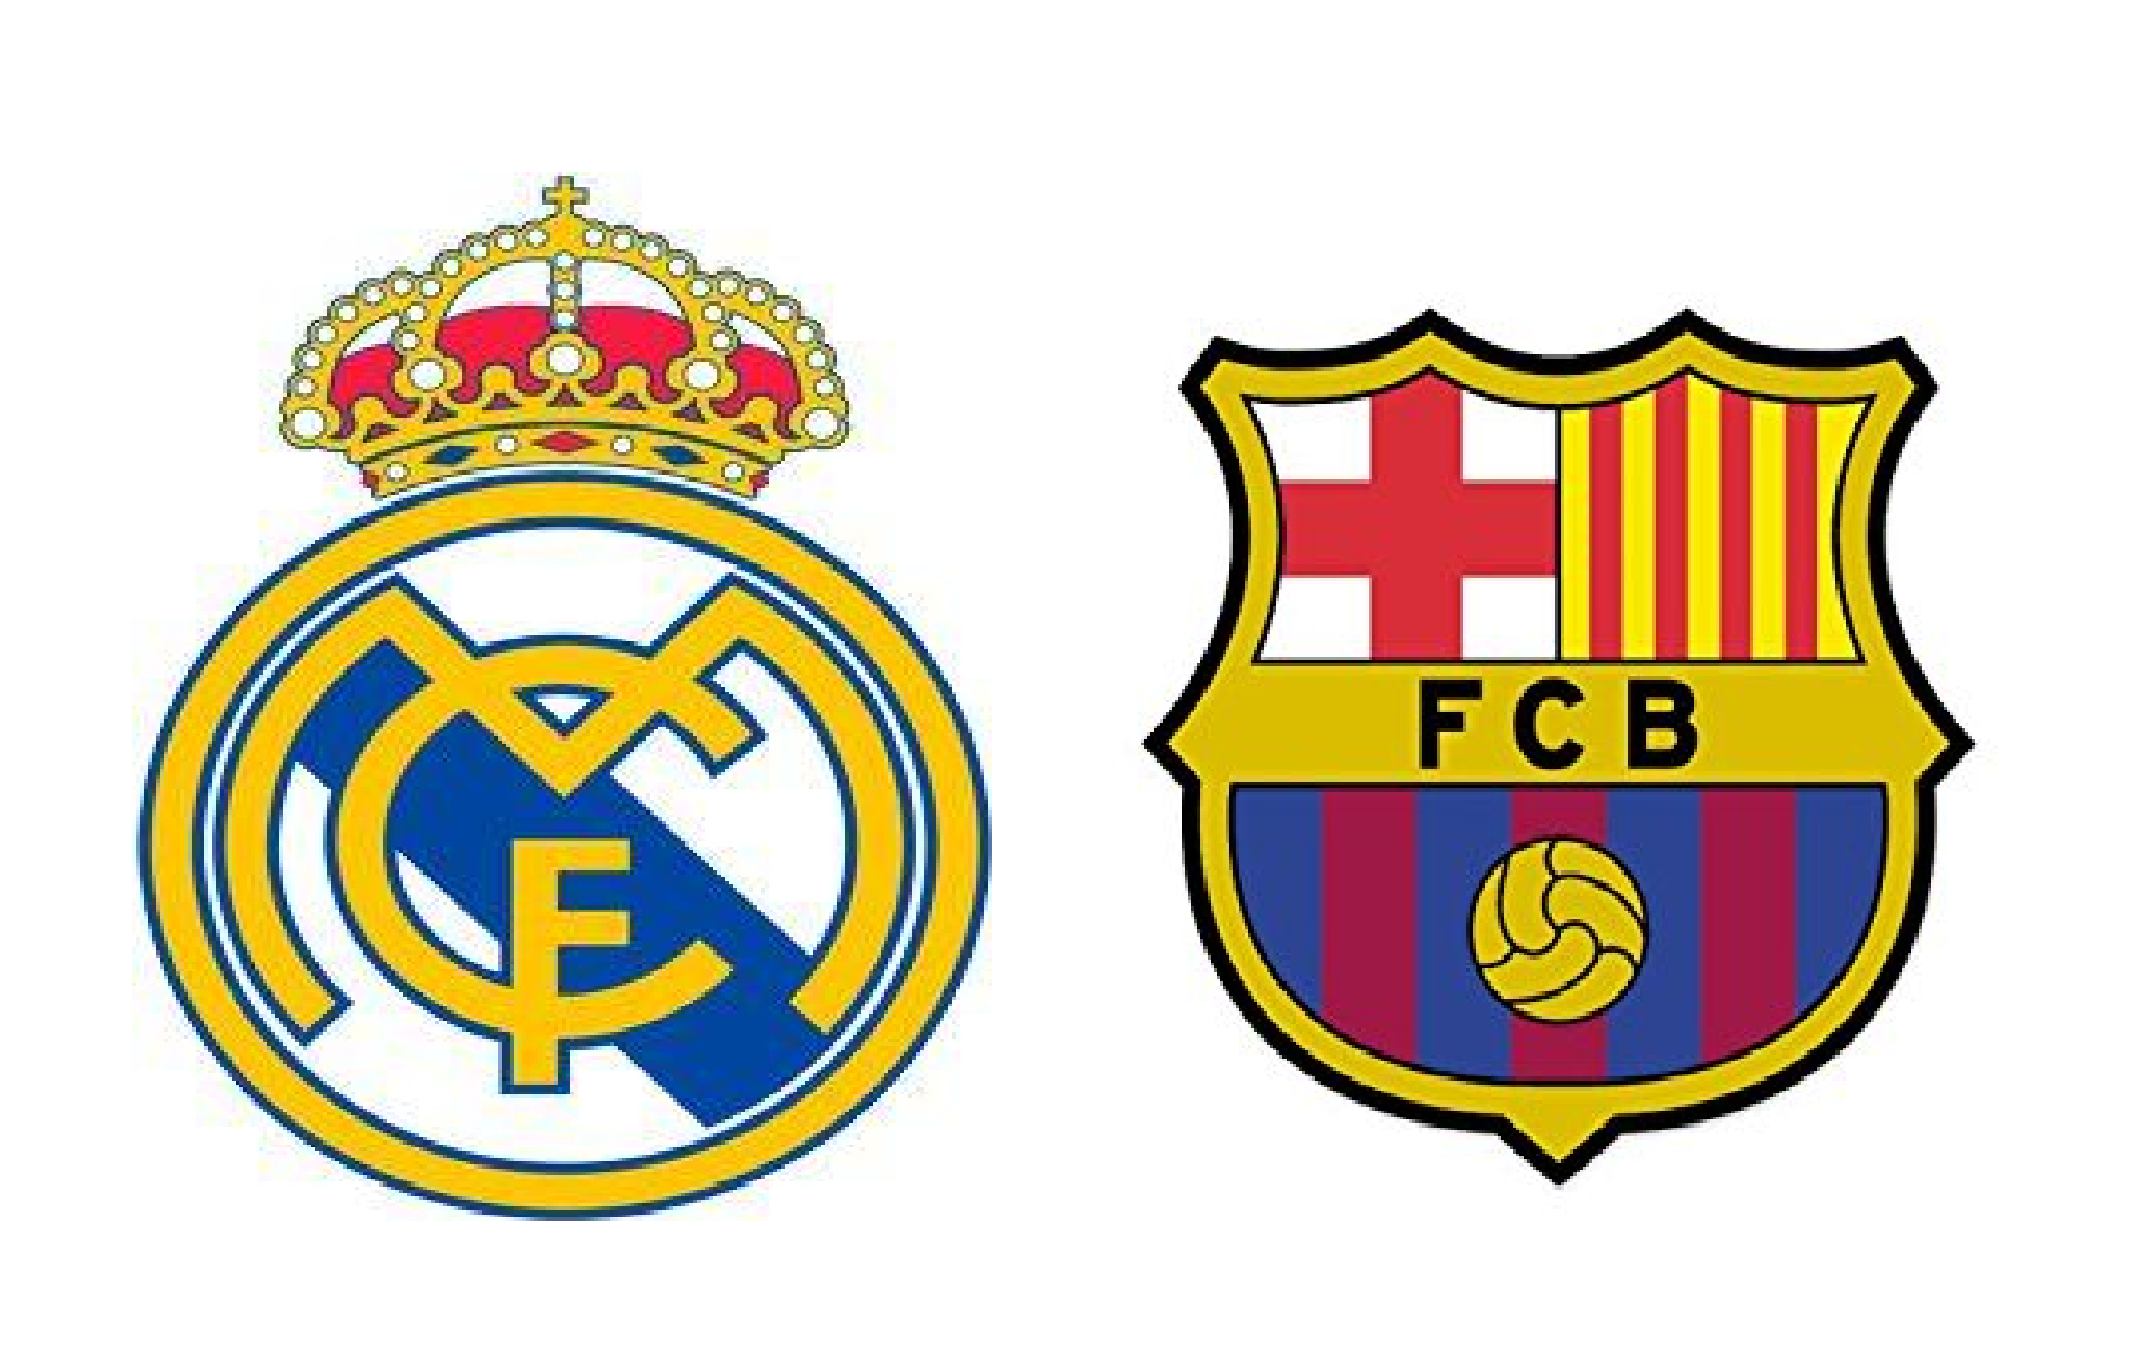 El Clasico Pilihan Madrid Menang Atau Makin Tertinggal Global News Co Id